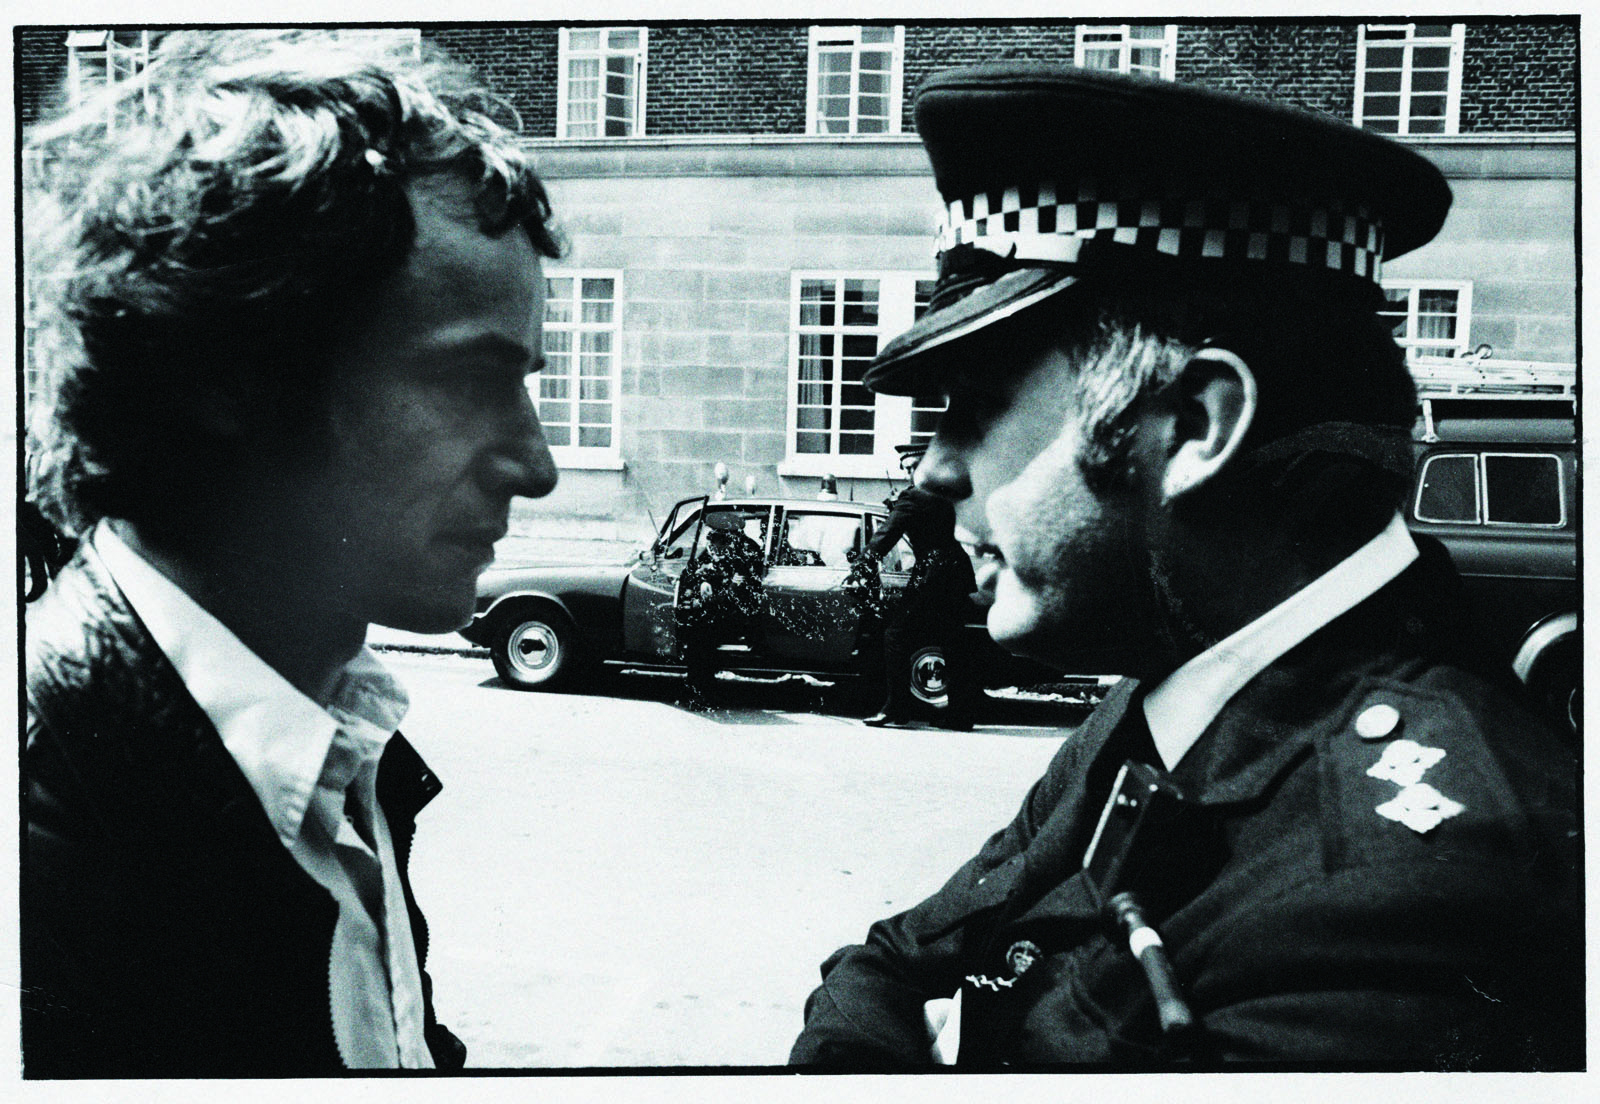 Duncan Campbell talking to a police officer at a demonstration in the 1980's.  Credit unknown.  Supplied by Duncan Campbell